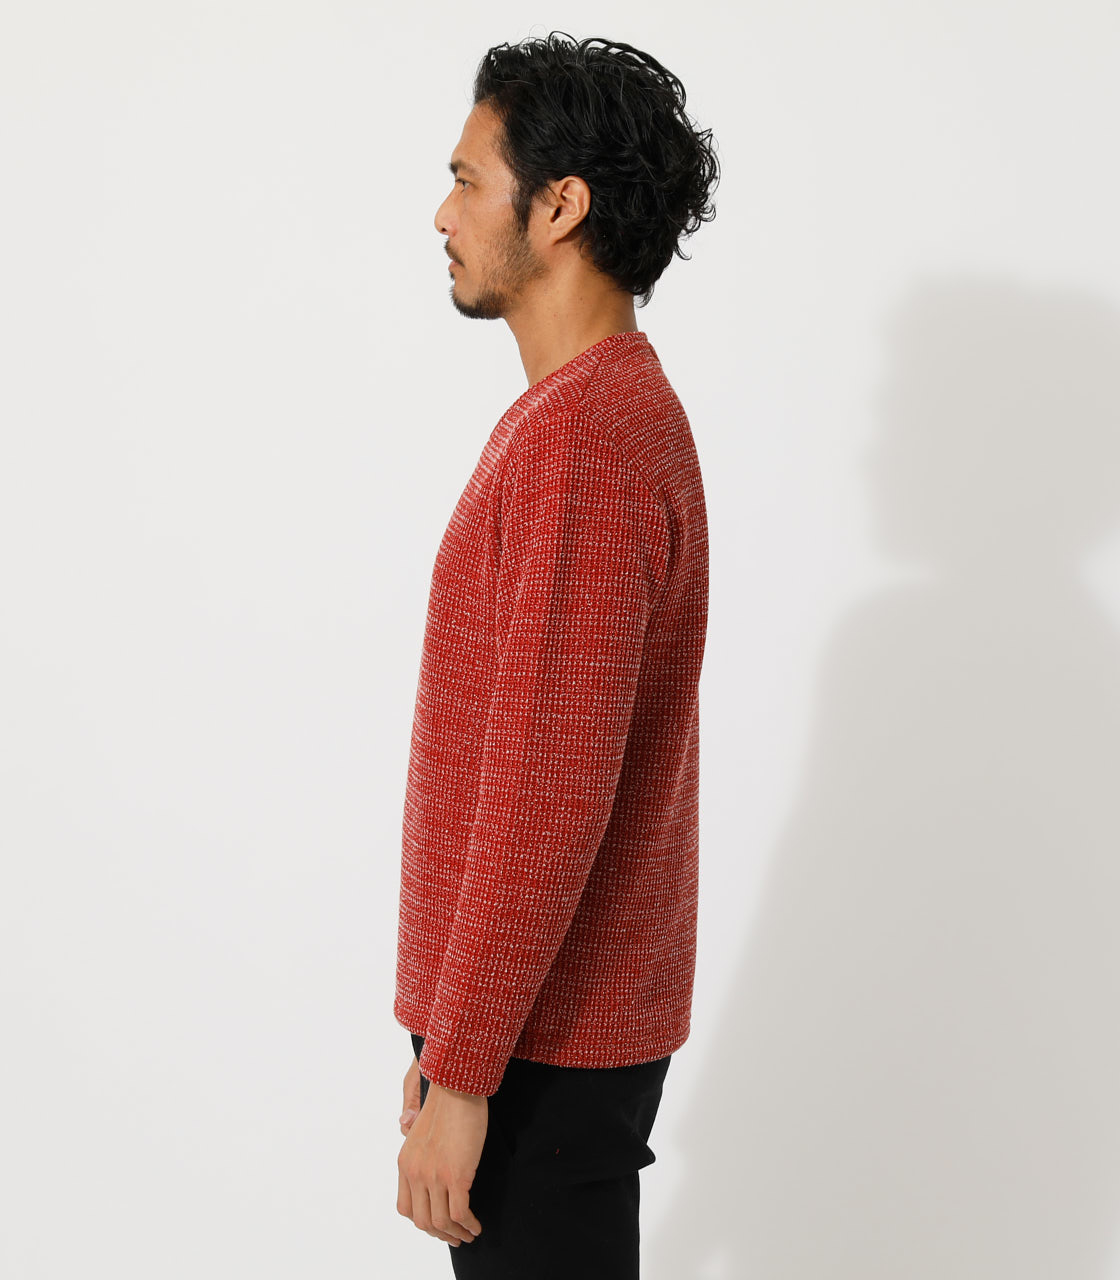 BRUSHED WAFFLE V/N LONG TEE/ブラッシュドワッフルVネックロングTシャツ 詳細画像 柄RED 5